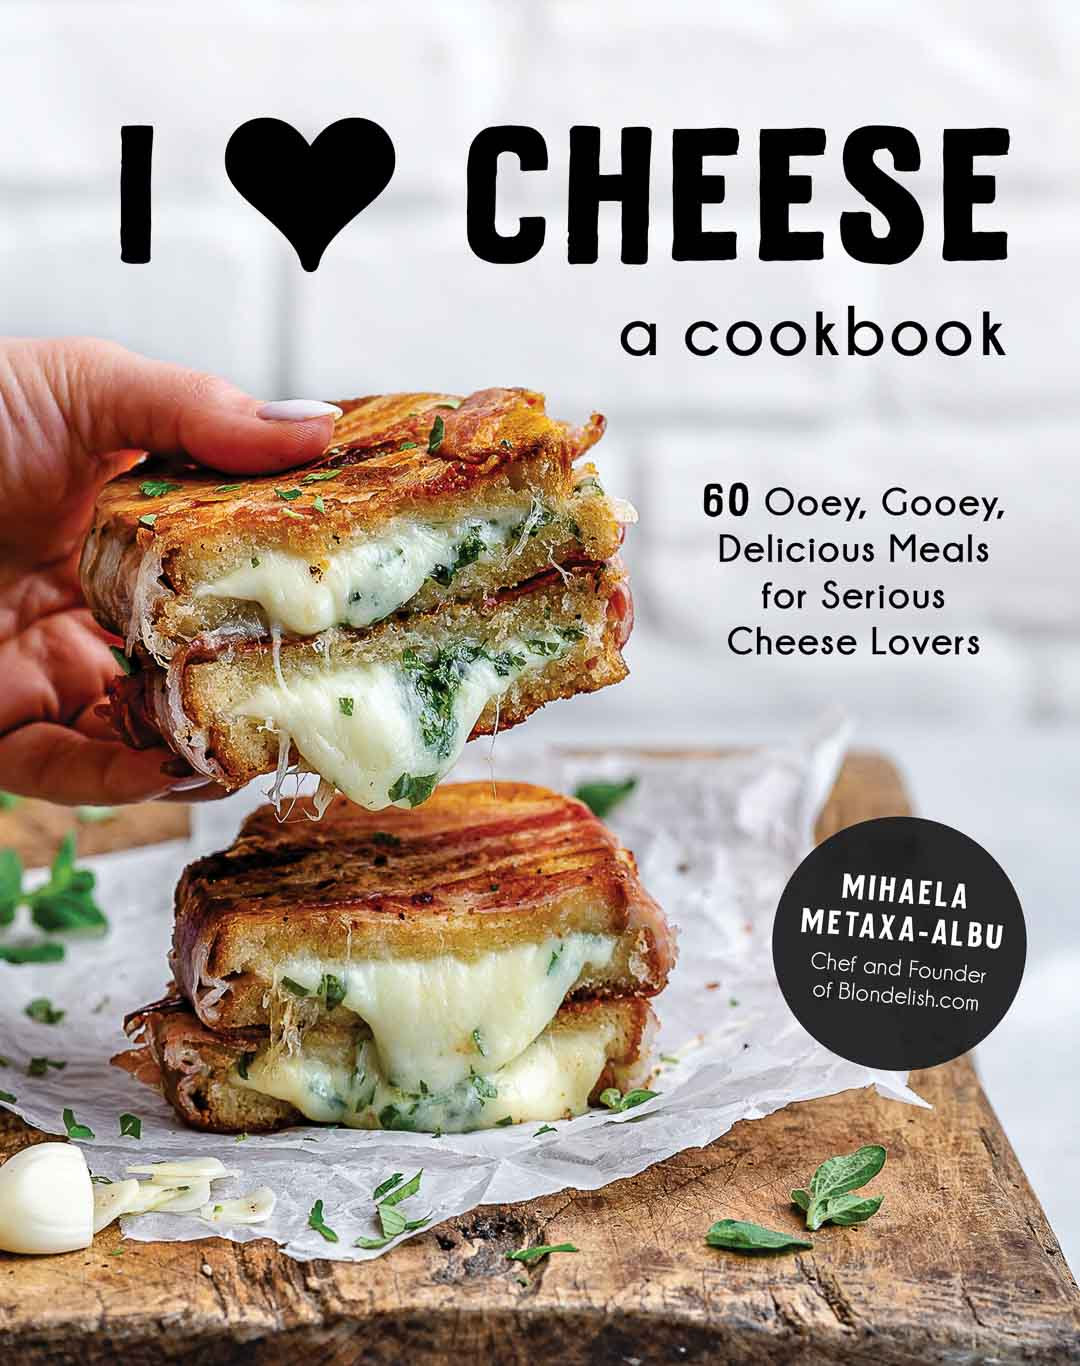 Cheese Recipes Cookbook-5